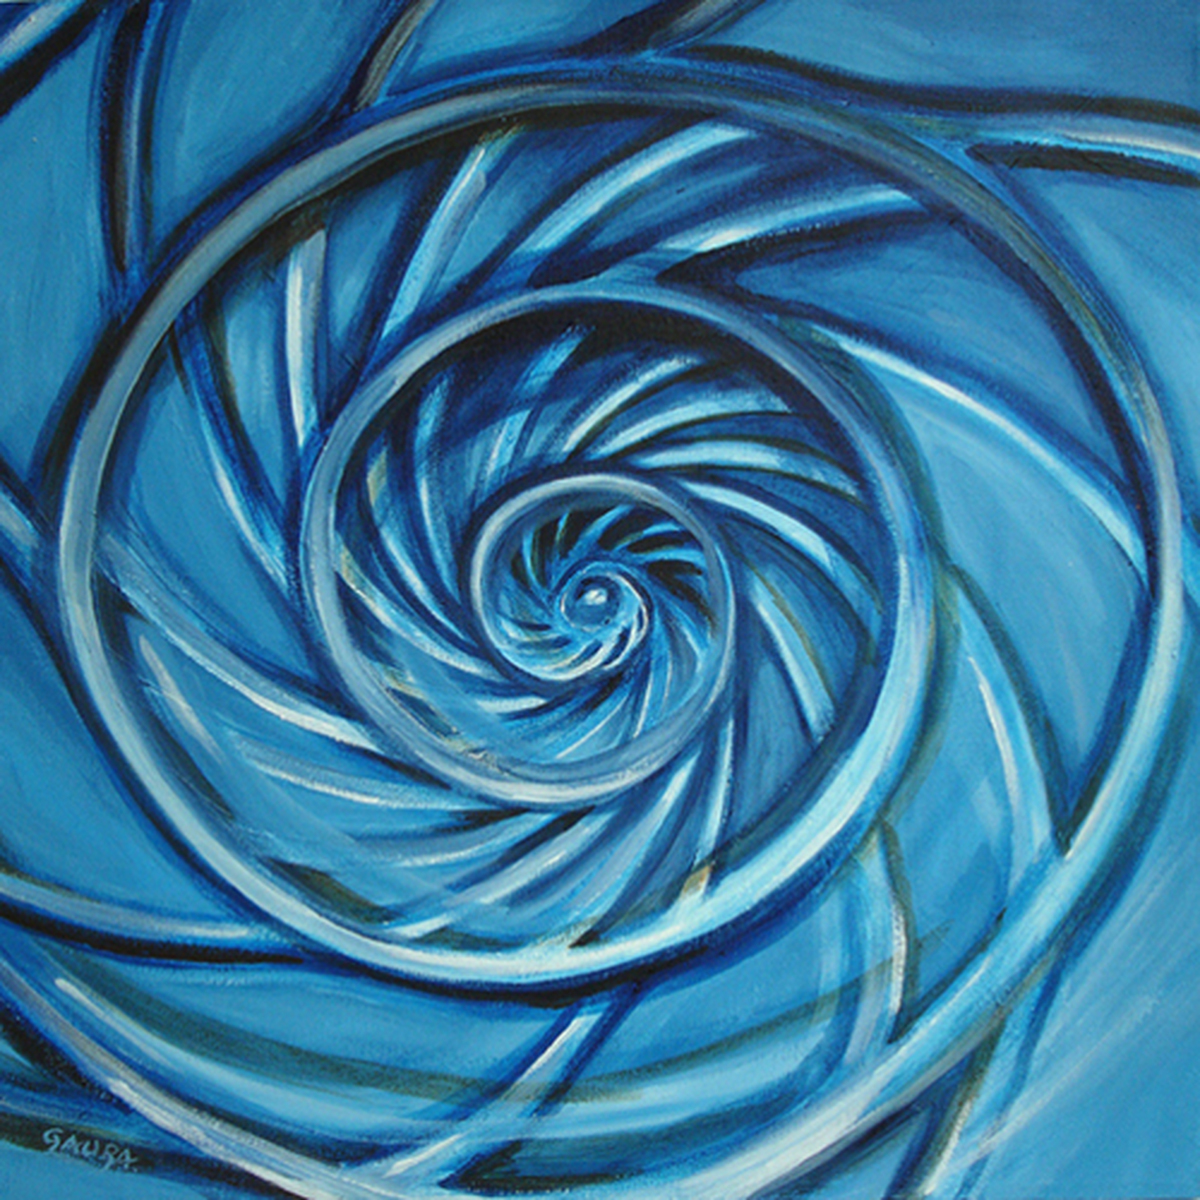 Blue Spiral (large view)